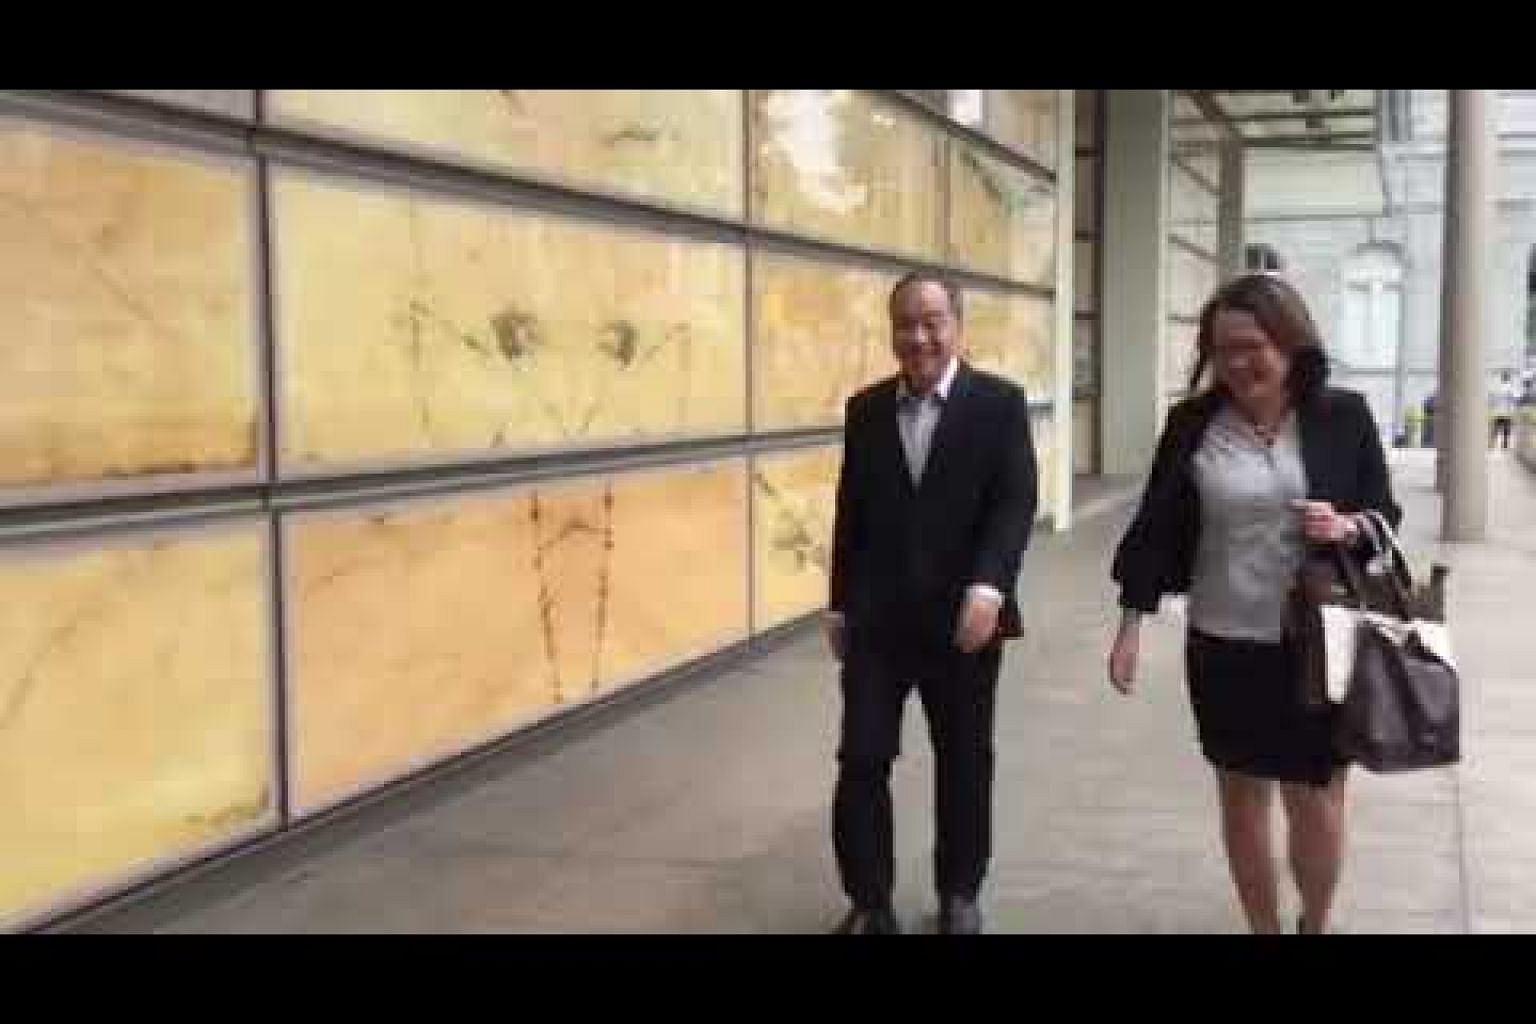 AHTC trial: Former WP chief Low Thia Khiang arrives at high court with WP chairman Sylvia Lim